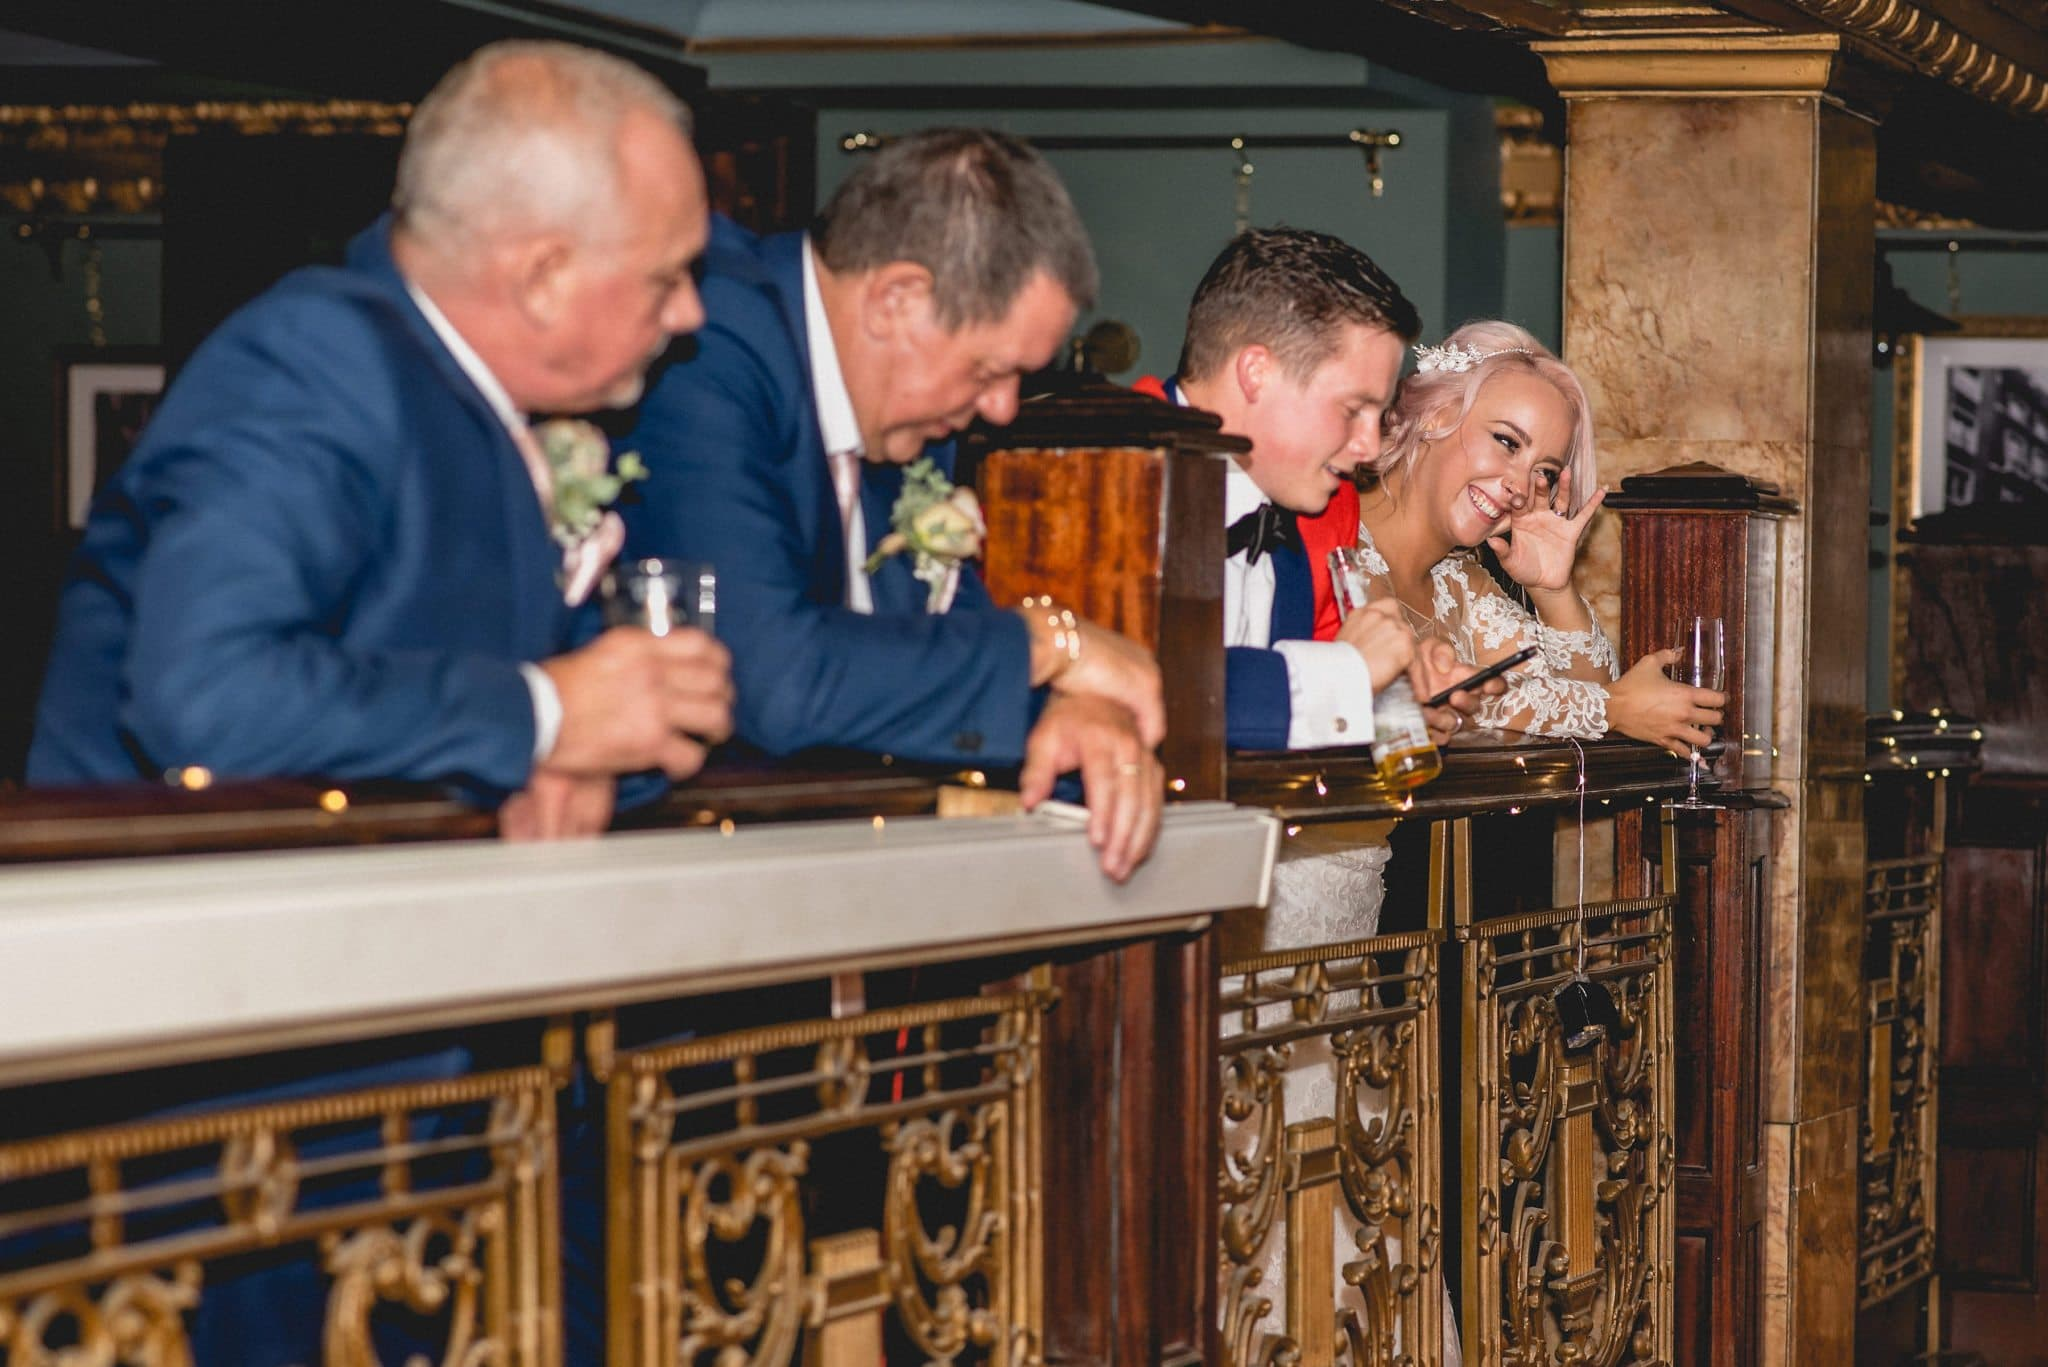 Bride and groom laugh during the speeches on the balcony of the Counting House pub